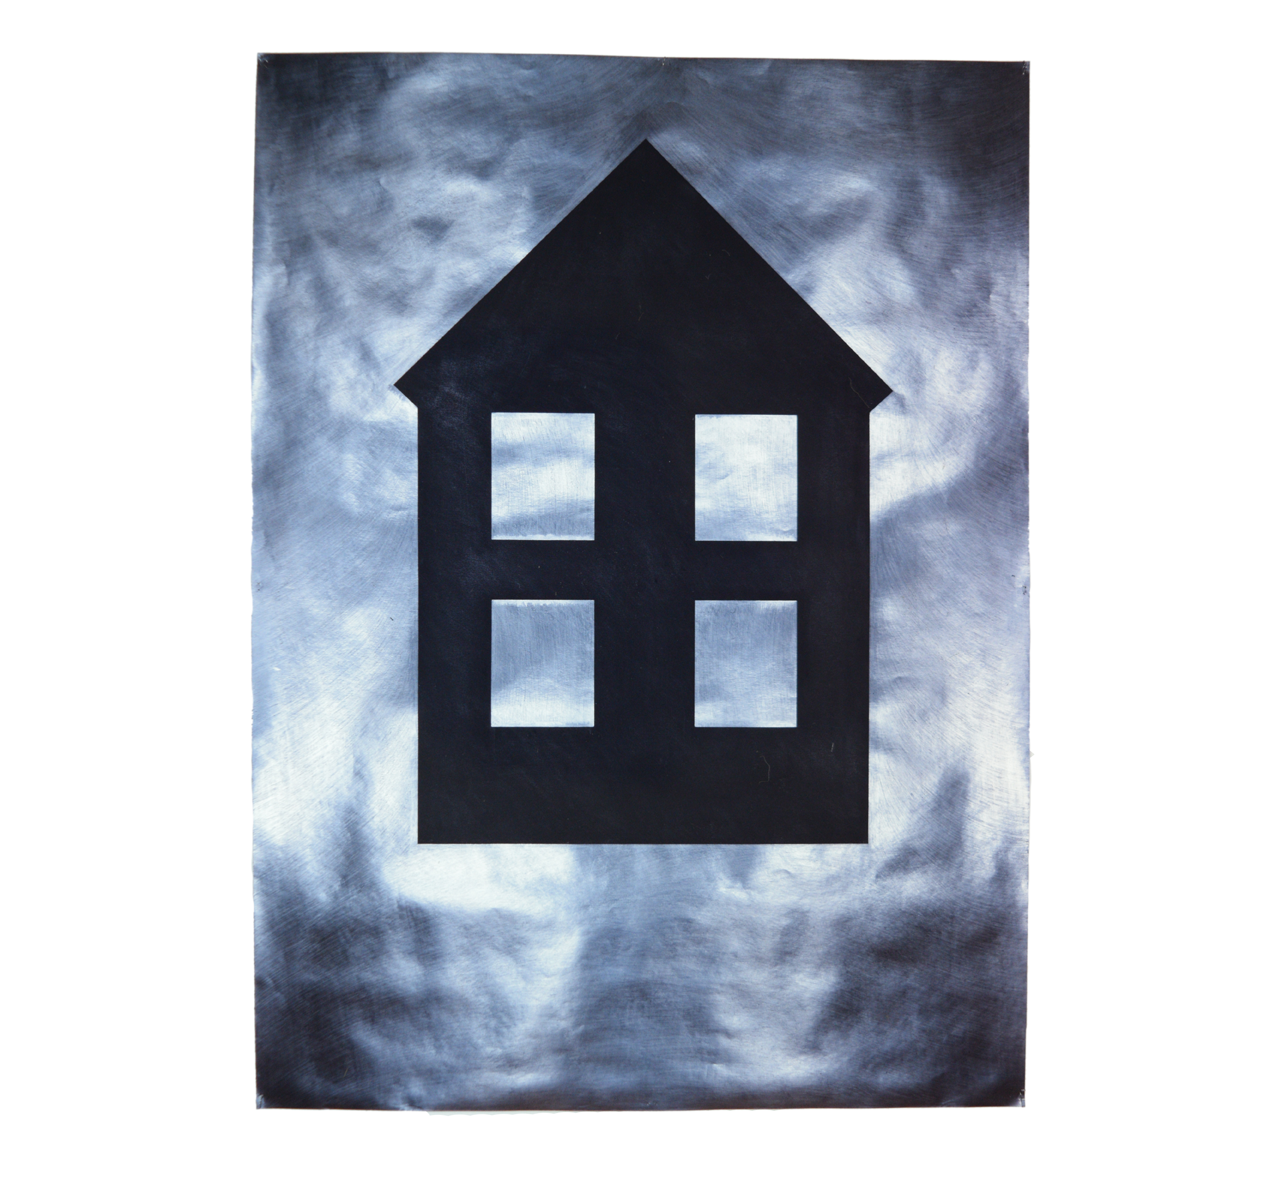 """Drawing of House"" 1981, charcoal, electrographic pencil on paper, 157 x 115 cm - Sammlung Michael Tilman - Photo Stephan Hadler"